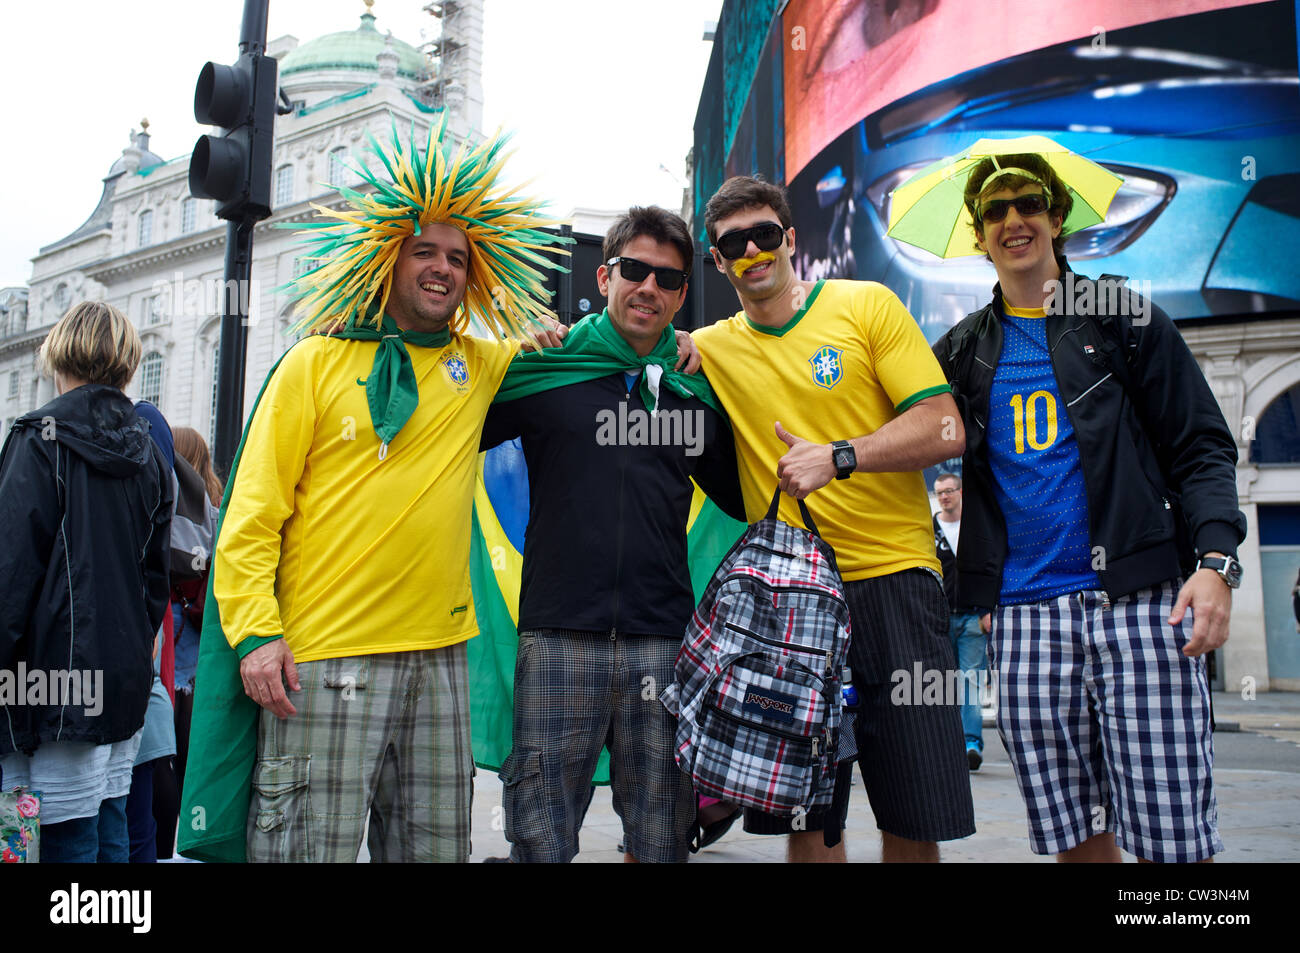 Brazilian supporters in Leicester Square Olympics London 2012 - Stock Image